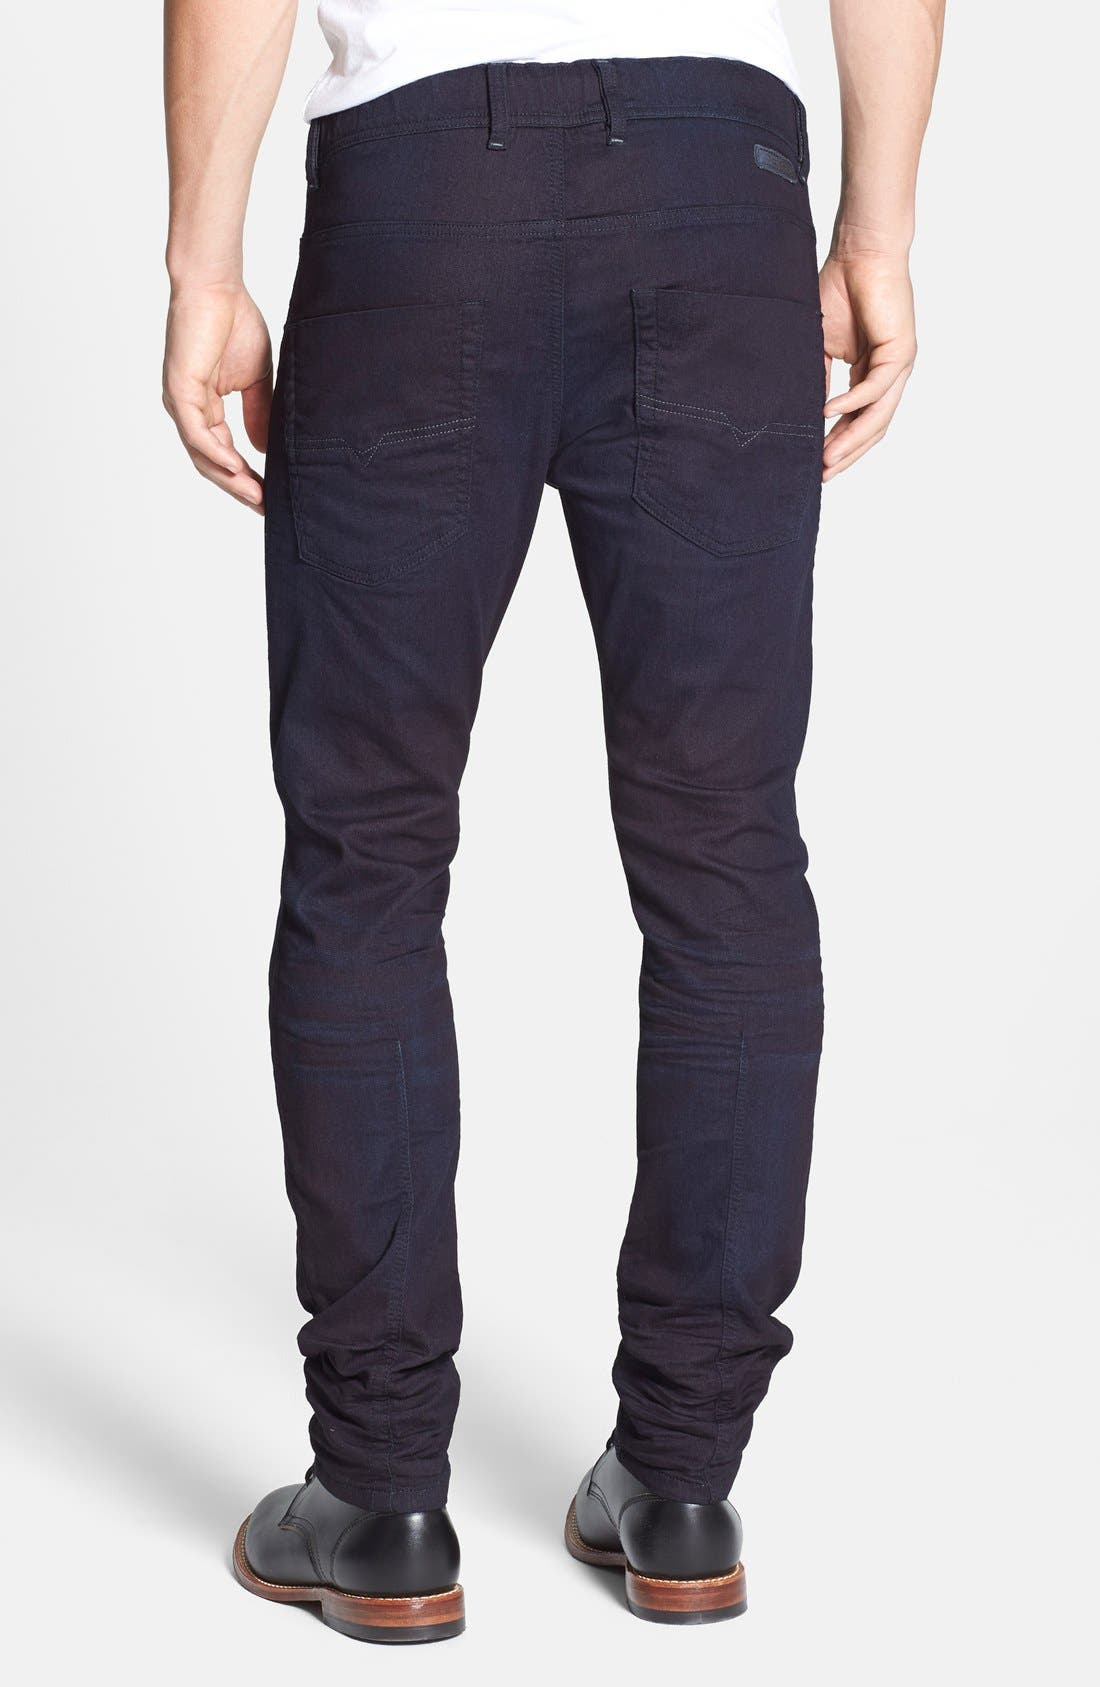 DIESEL<SUP>®</SUP>, Krooley Jogg Slouchy Skinny Fit Jeans, Alternate thumbnail 4, color, 0829P